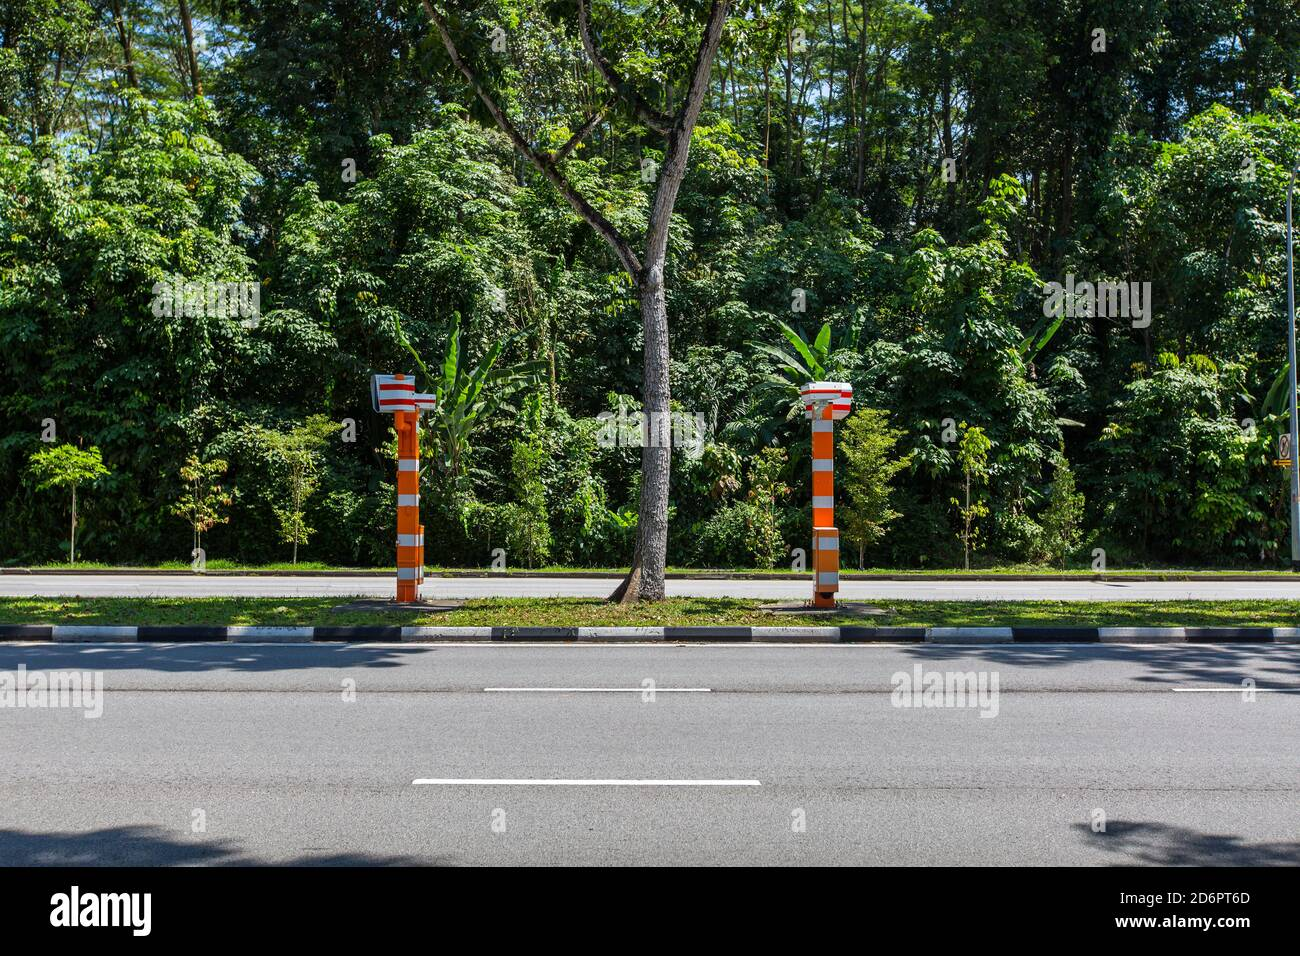 Orange and white colour police fixed speed camera (FSC) fixed on the divider of the road to discourage drivers from speeding up from afar. Stock Photo